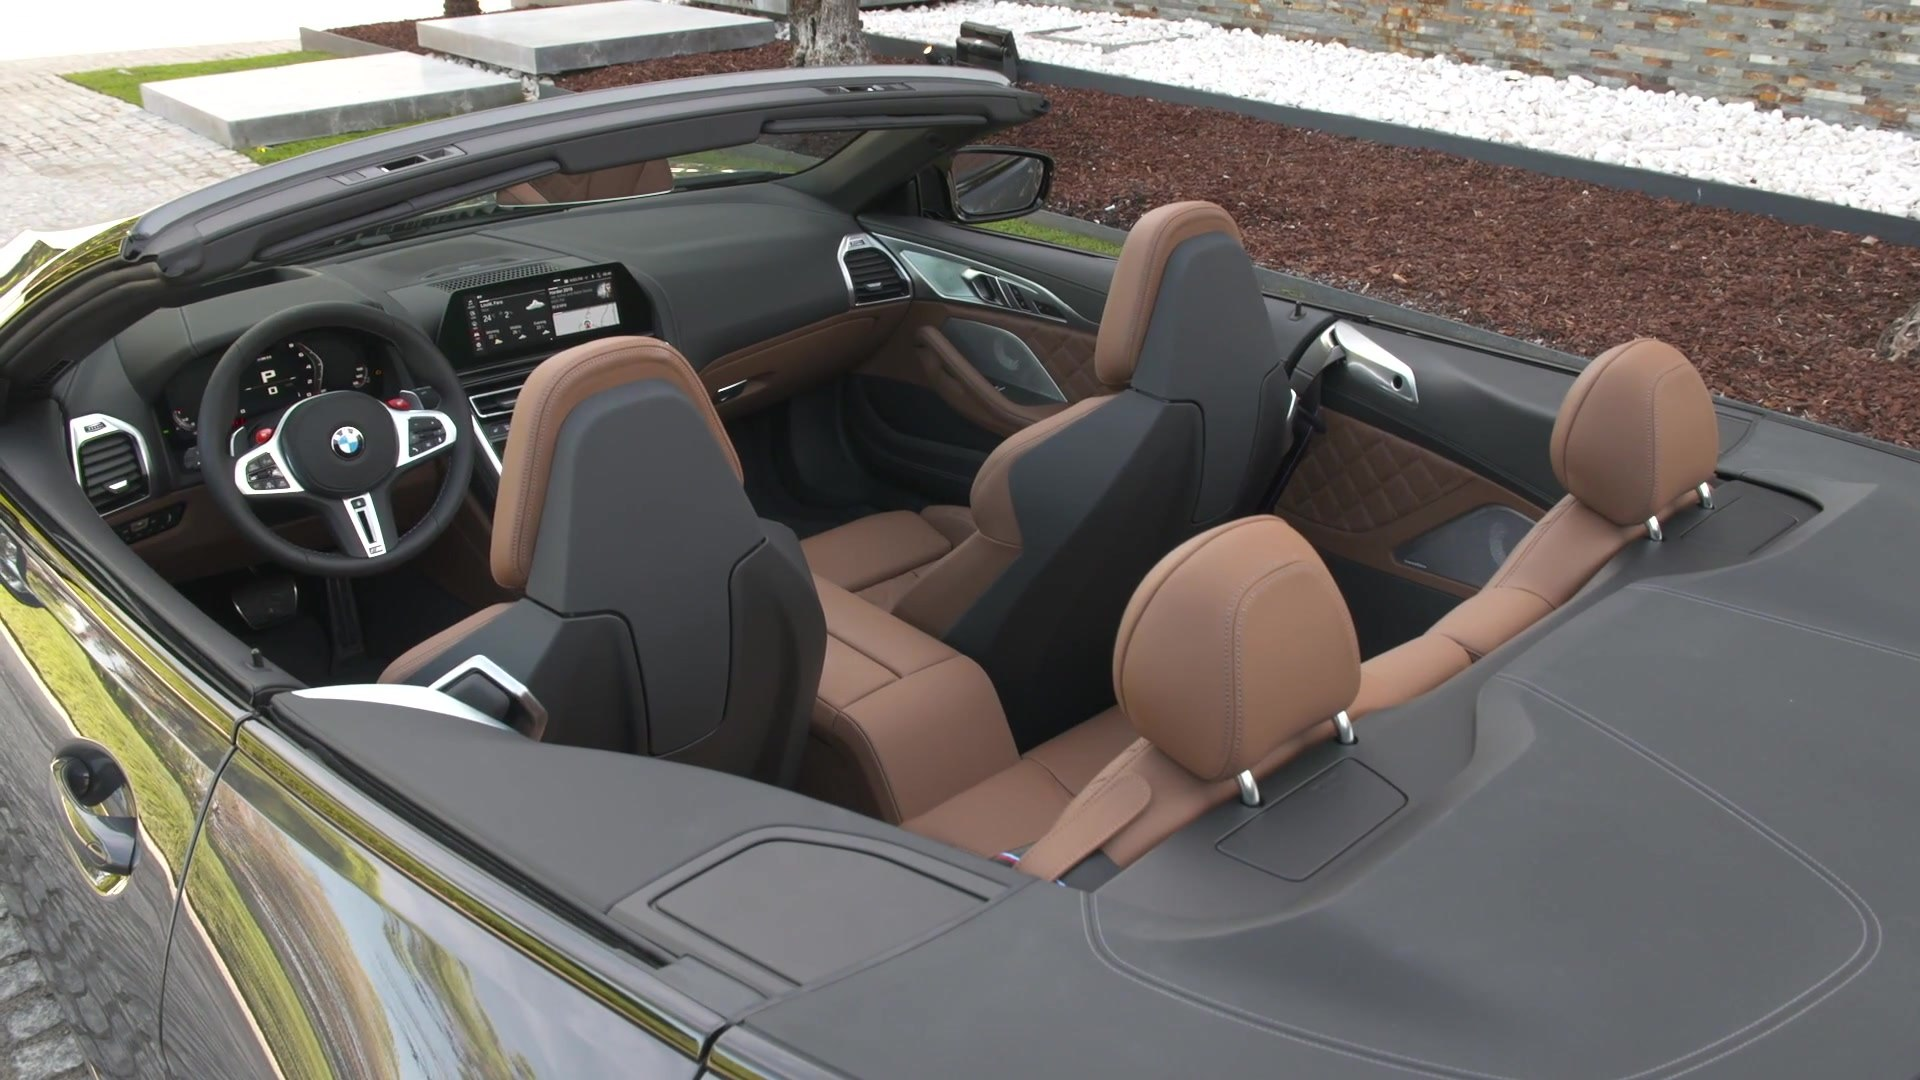 The New Bmw M8 Competition Convertible Interior Design Video Dailymotion